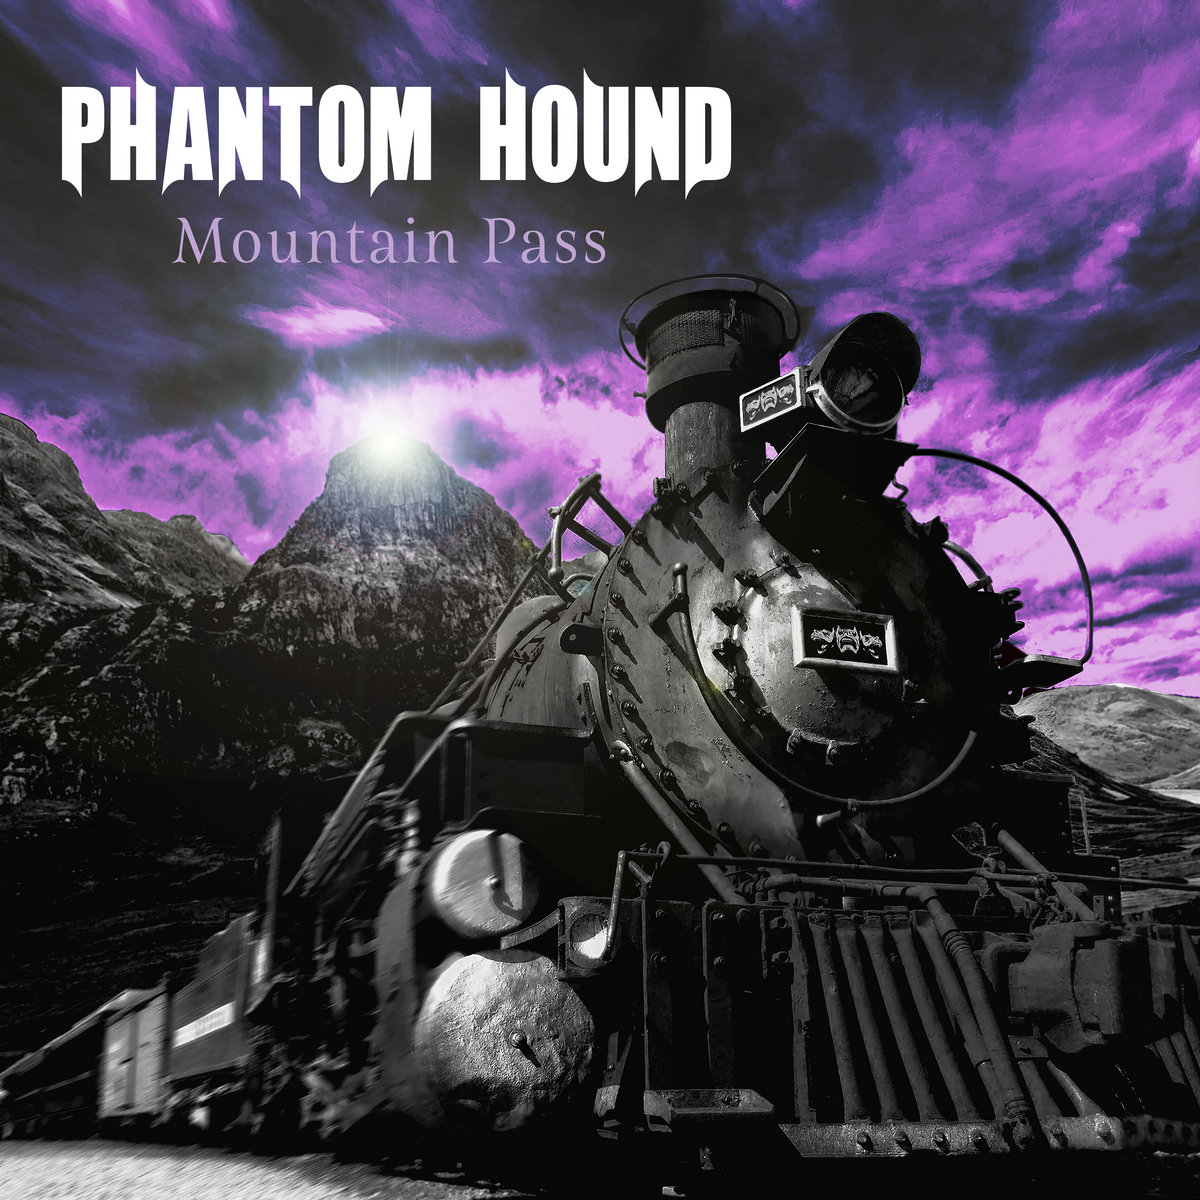 Phantom Hound Mountain Pass